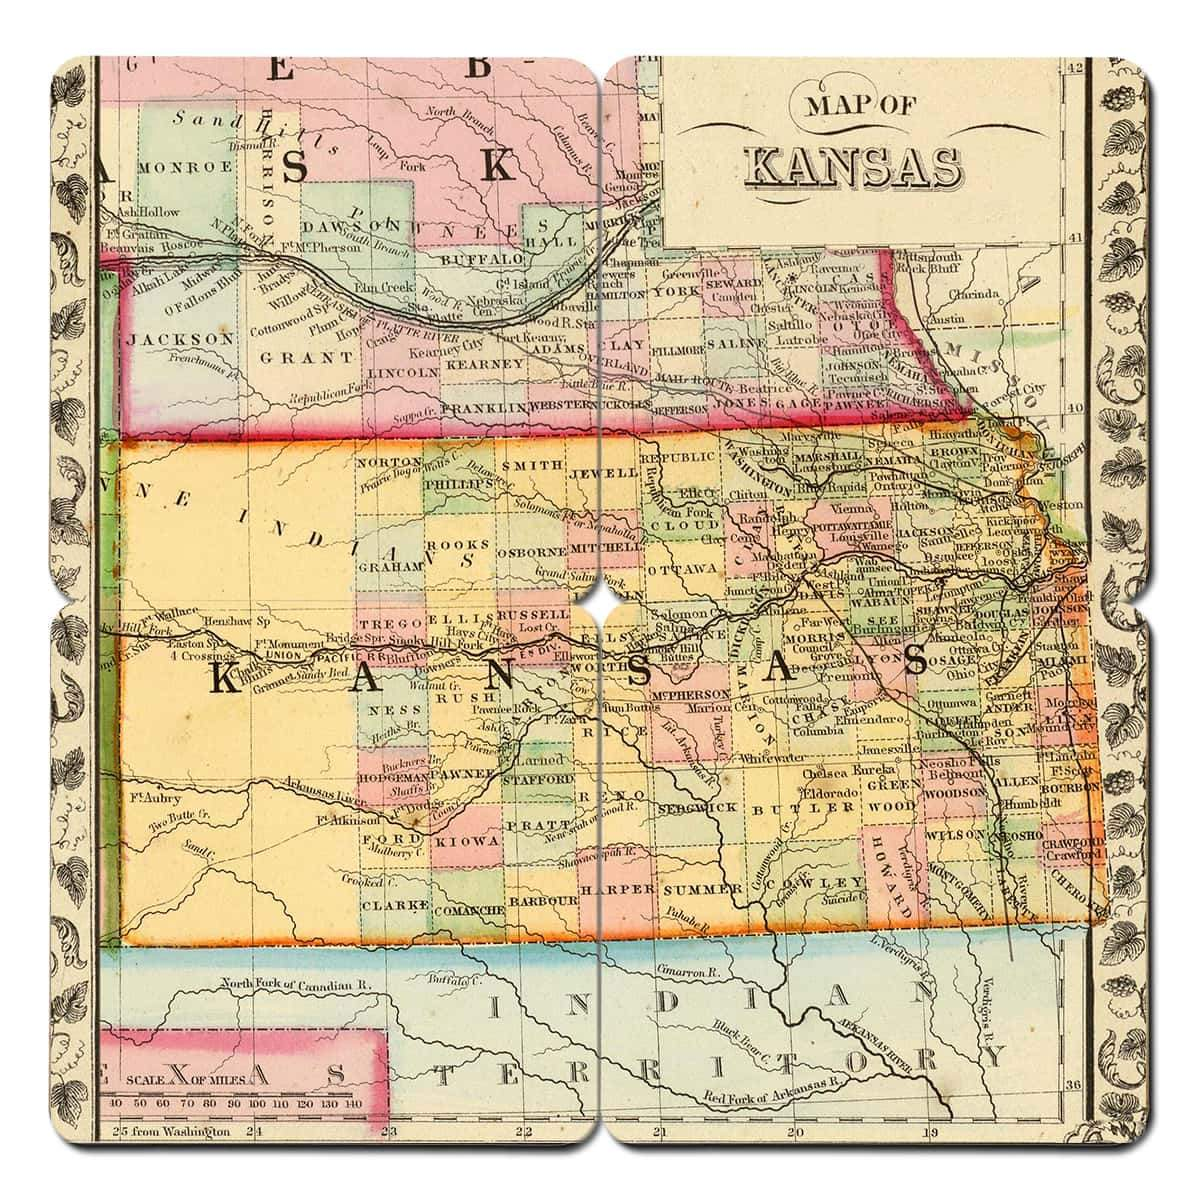 Kansas Old World Map Coaster on kansas on a us map, kansas map with all cities, kansas atlas, kansas county maps with towns, colorado kansas border map, kansas mountains map, kansas river map, kansas land regions, kansas climate, kansas lakes map, kansas dot maps, kansas state, kansas sites of interest, kansas topographic map, kansas on american map, kansas elevation map, kansas road map, kansas geography map, kansas on country map, kansas road conditions,